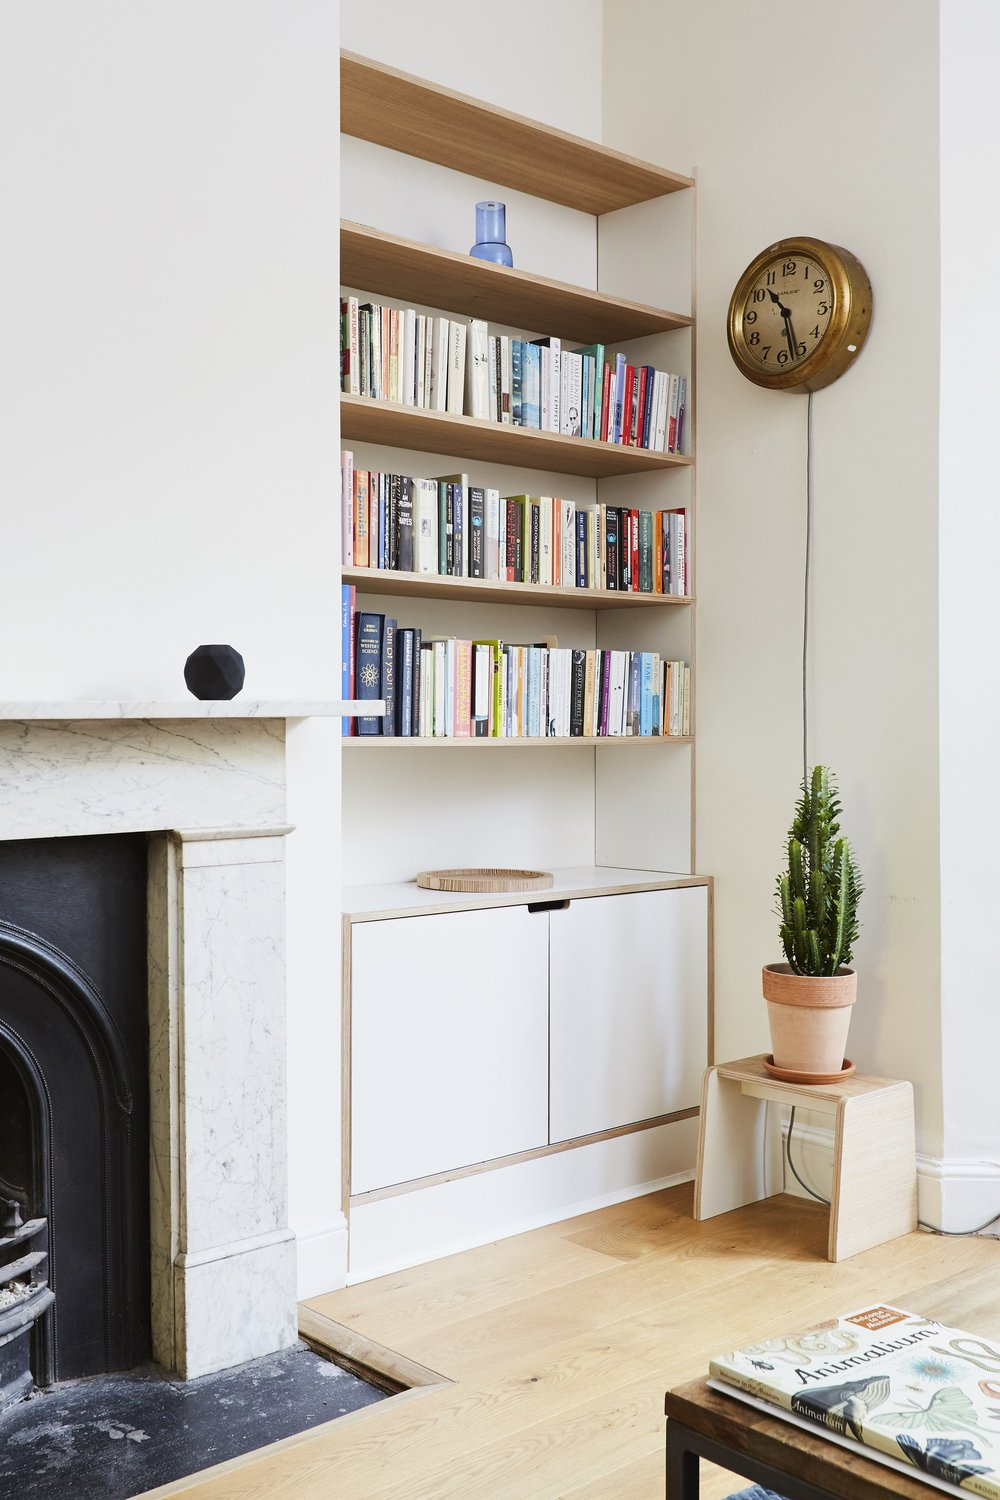 The plywood bookshelves nestle neatly within the alcoves either side of the fireplace. Lozi wanted to create practical storage without distracting from the beauty of the original features.